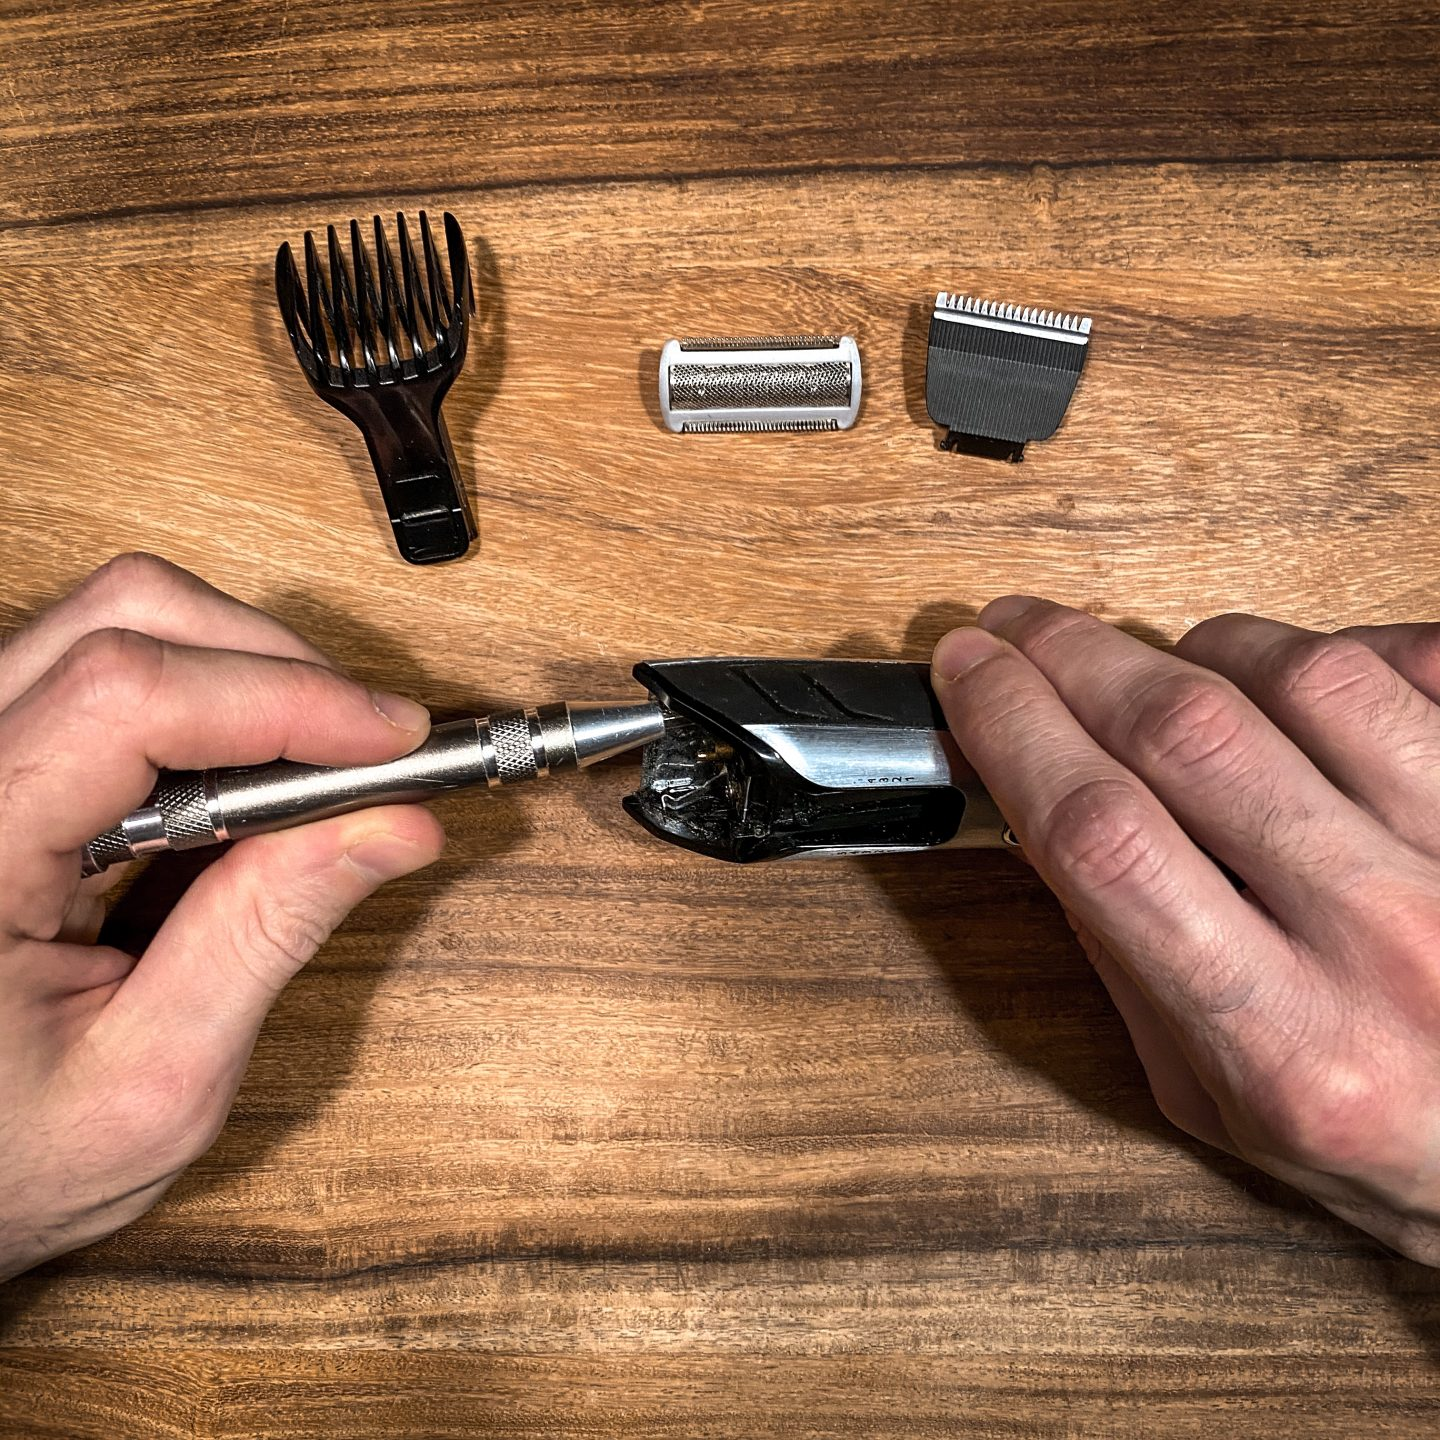 Electronic shaver is opened to change the batterie. This measure protects the climate